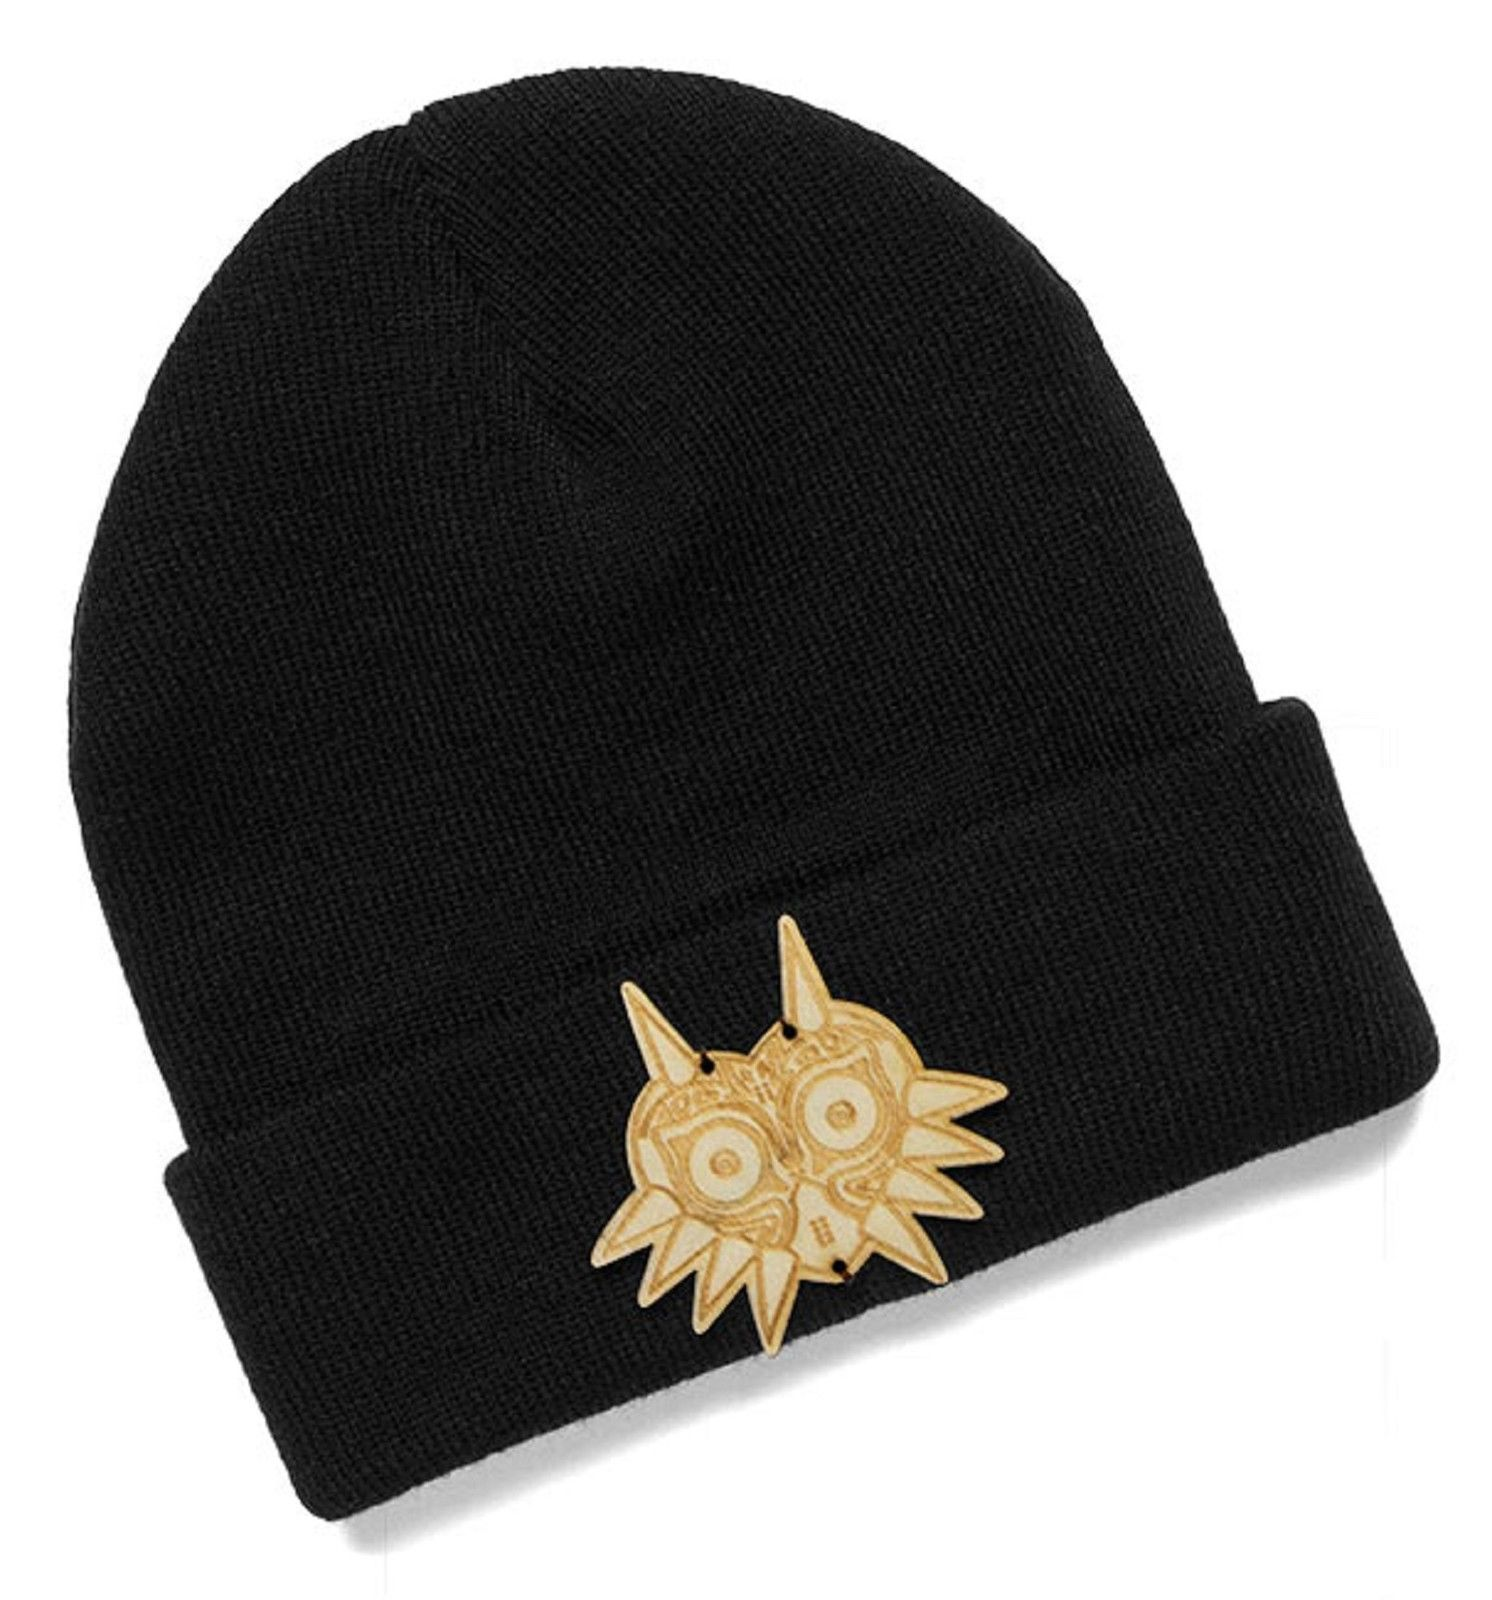 Legend of Zelda - Majoras Mask Cuff Beanie image ... 411d540fb842